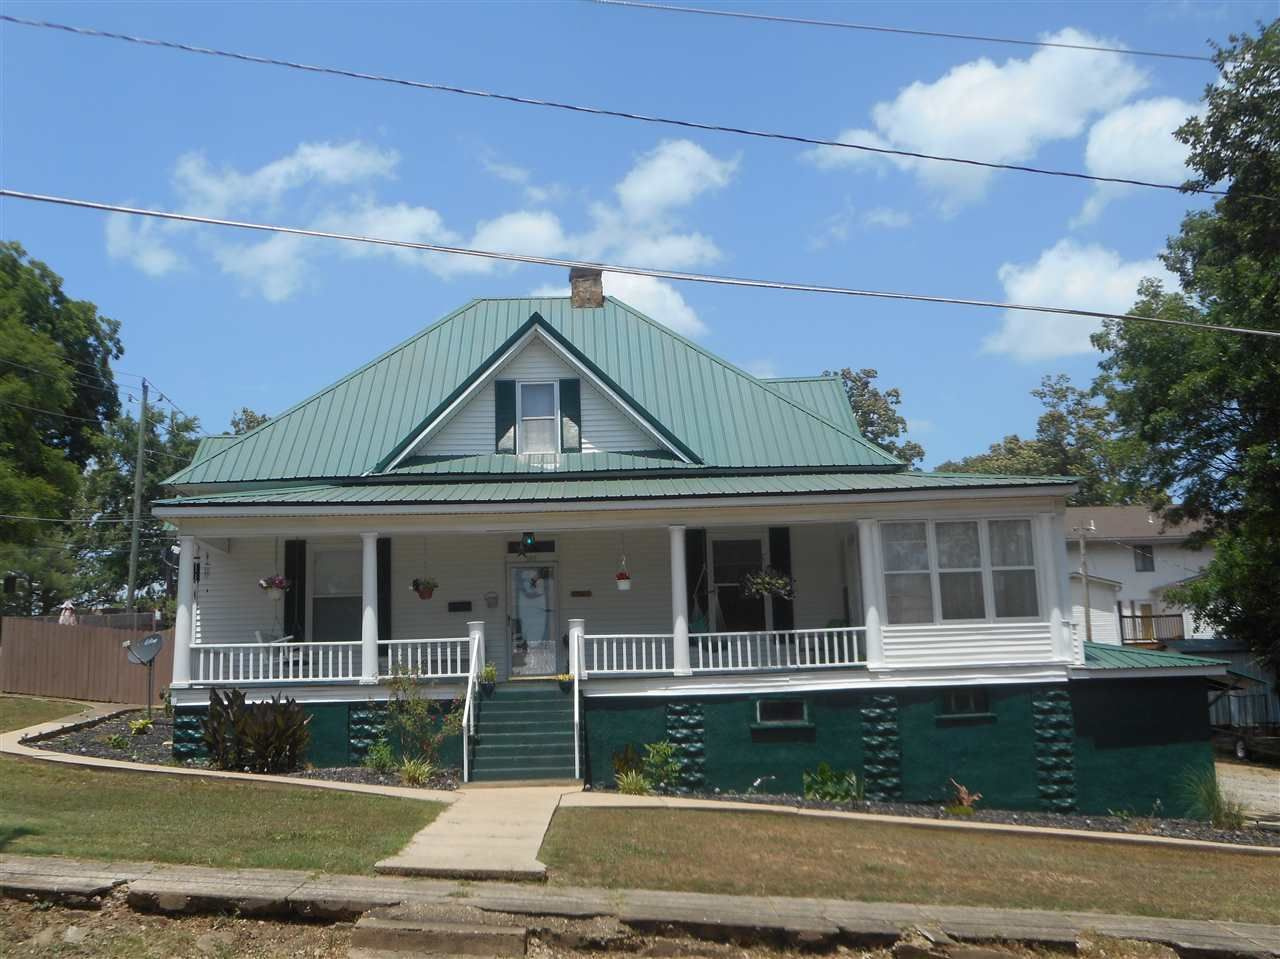 Turn Back The Clock With This Victorian Home 2230 Sq Ft 4 Bedroom